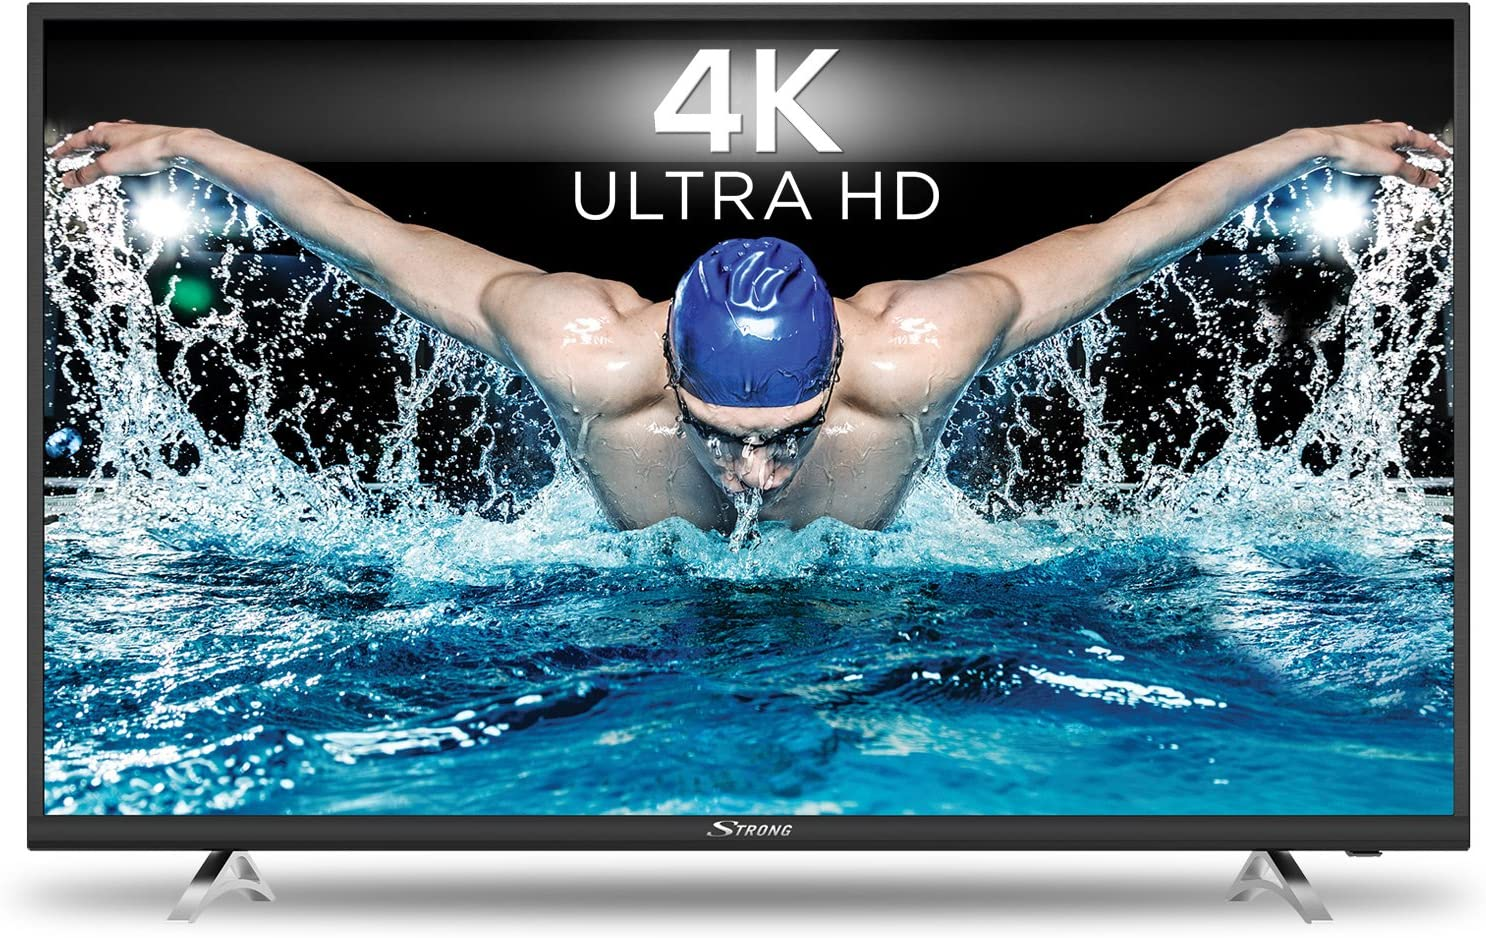 STRONG SRT 55UA6203 UHD Smart TV HDR – 4K Televisores LED 55 Pulgadas, 139 cm (Netflix, Youtube) Negro: Amazon.es: Electrónica